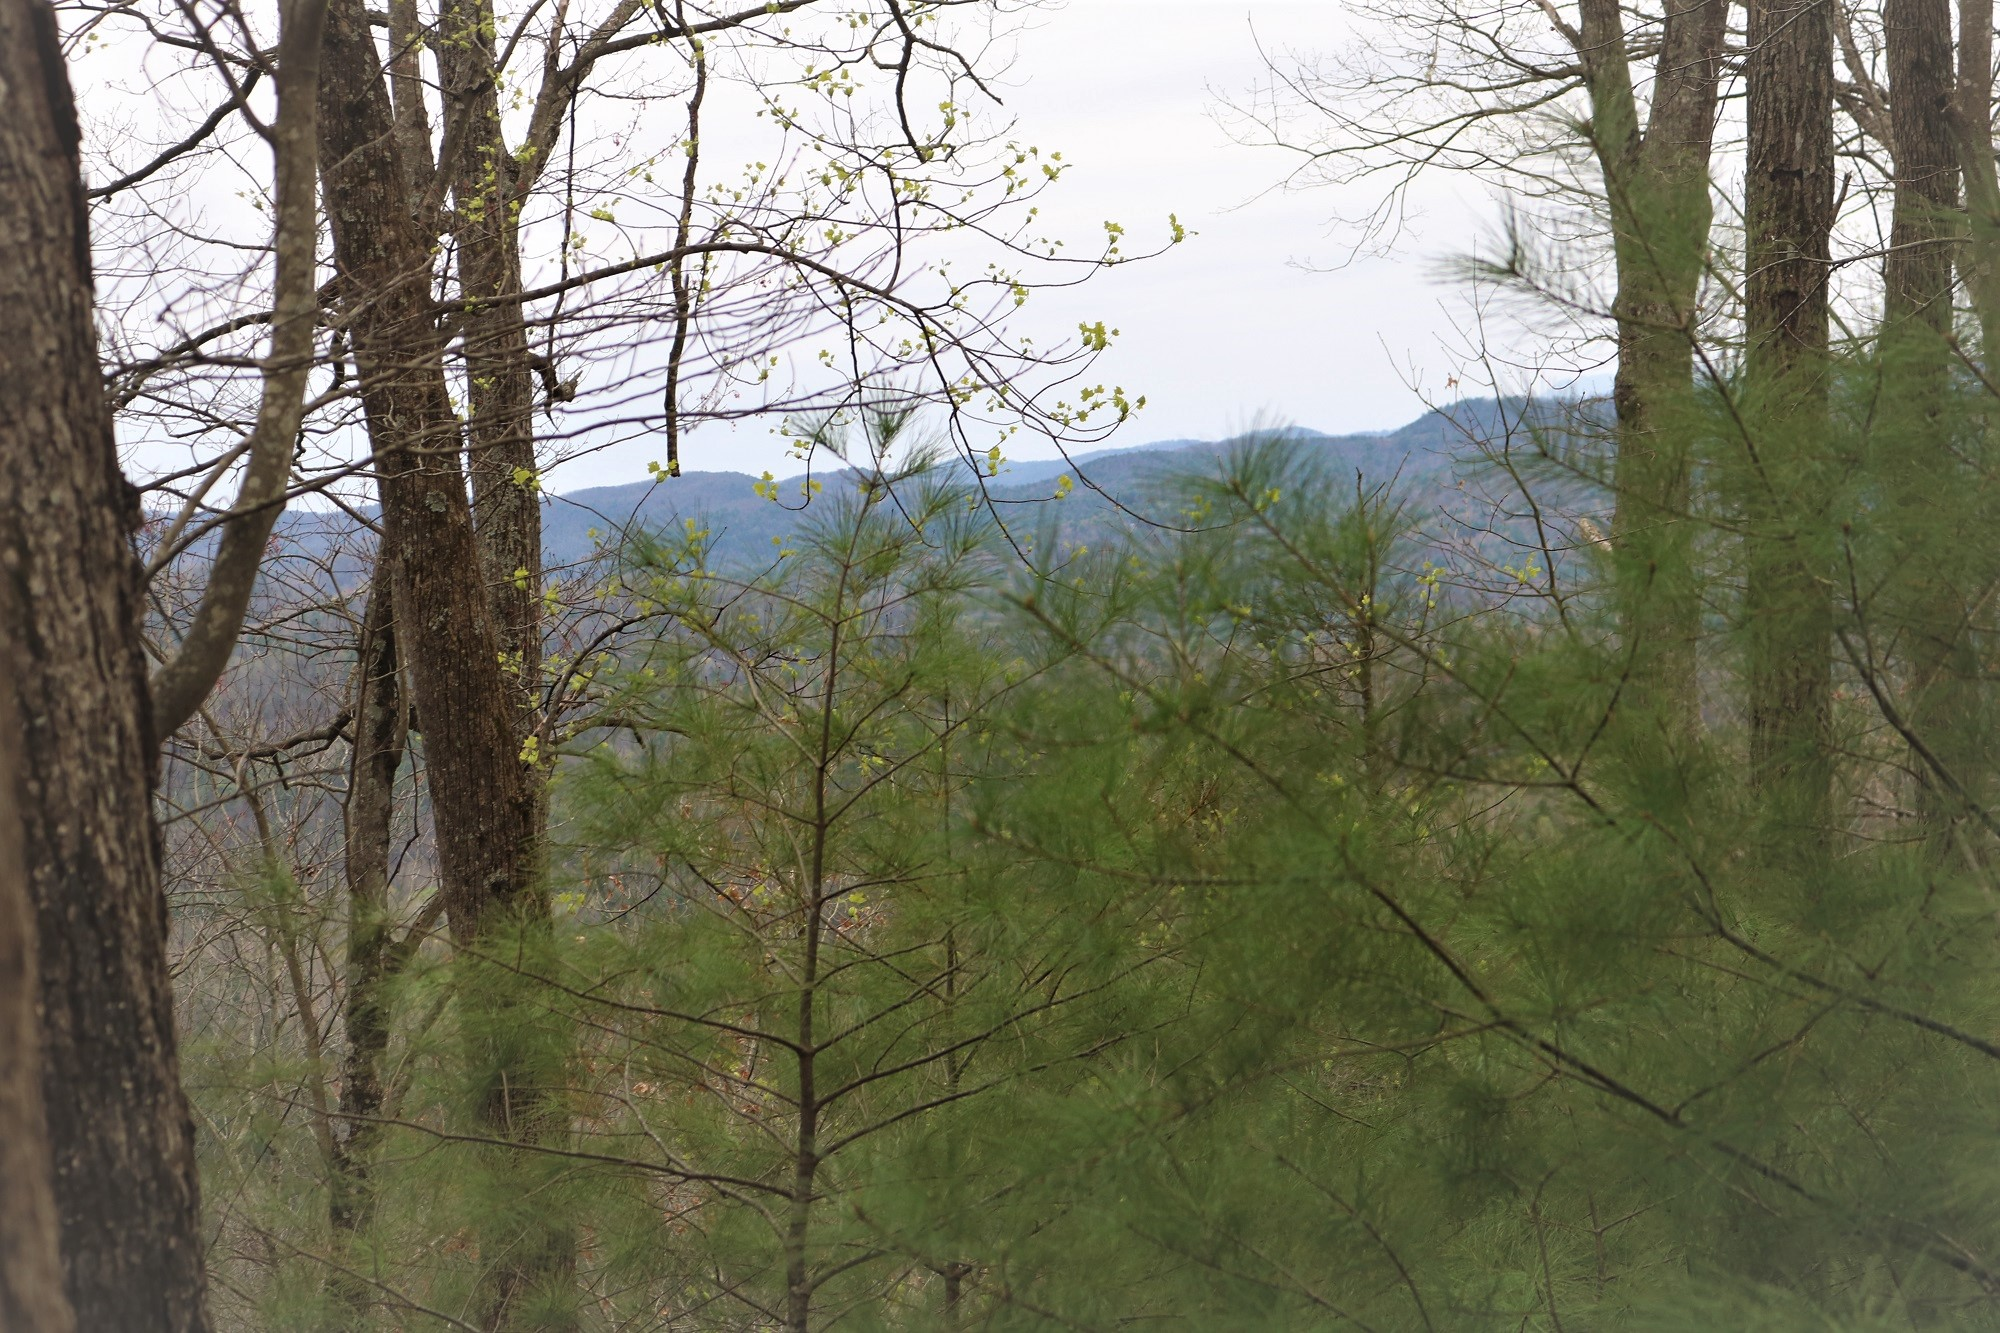 LOT 7B LEATHERWOOD MOUNTAIN ON GRANNY'S RIDGE RD. FERGUSON, NC 28624